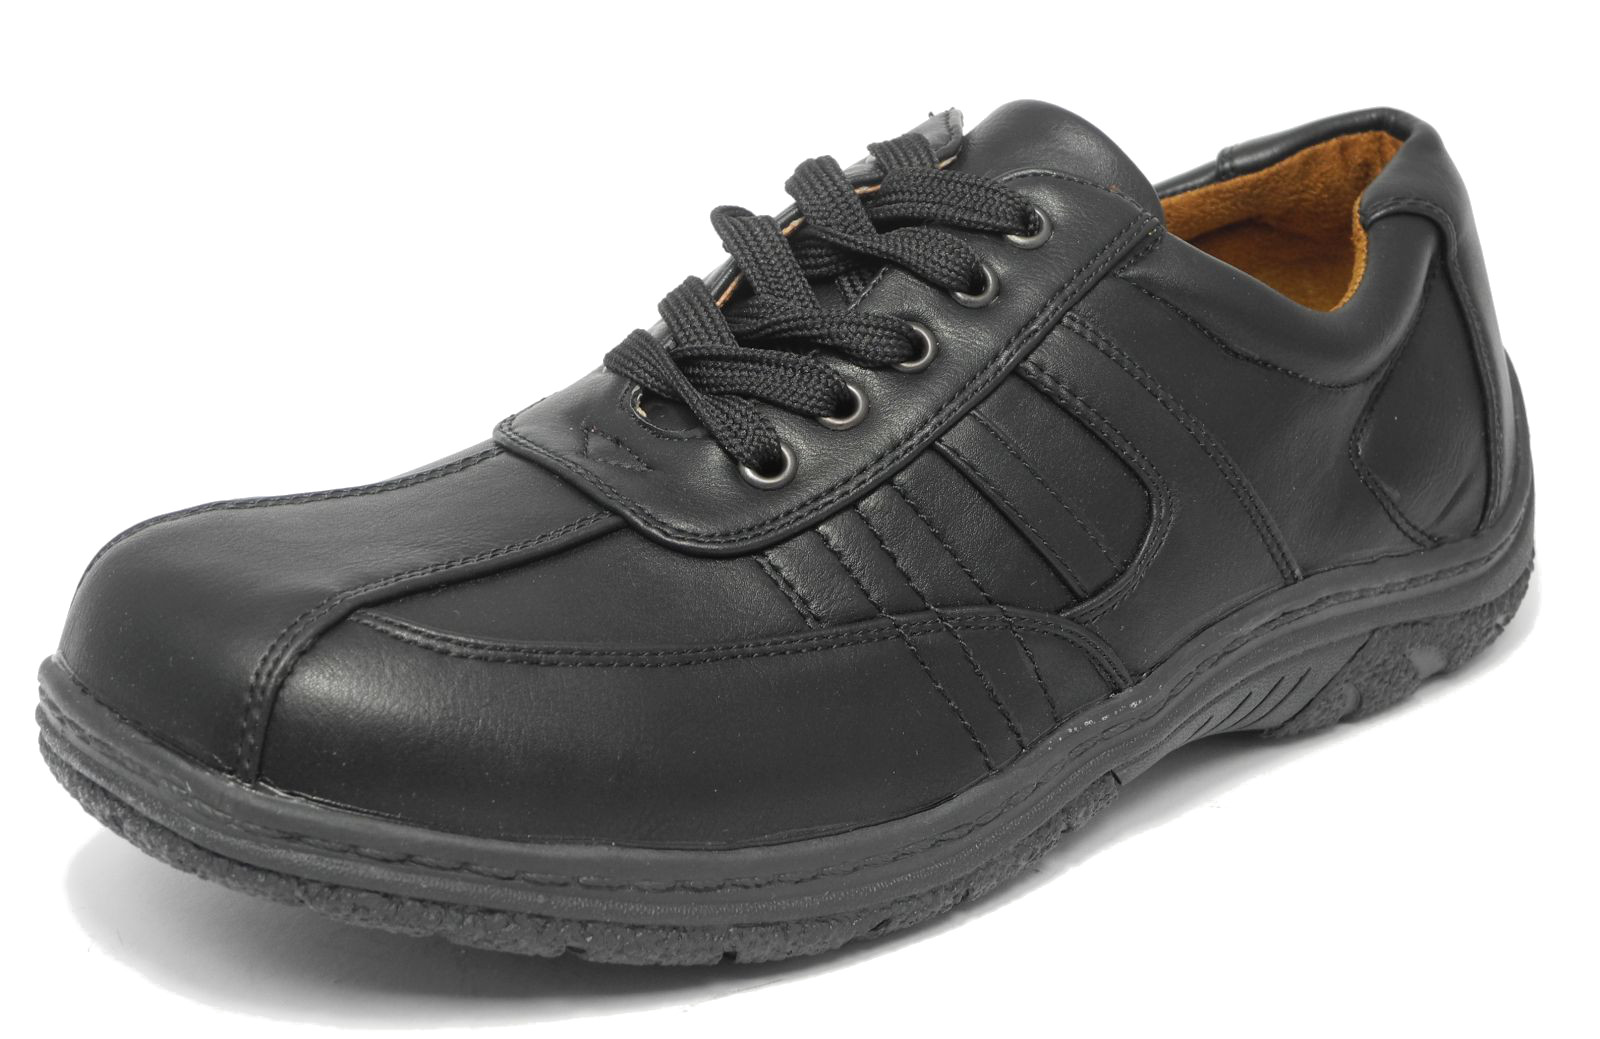 Mens Wide Arch Support Shoes